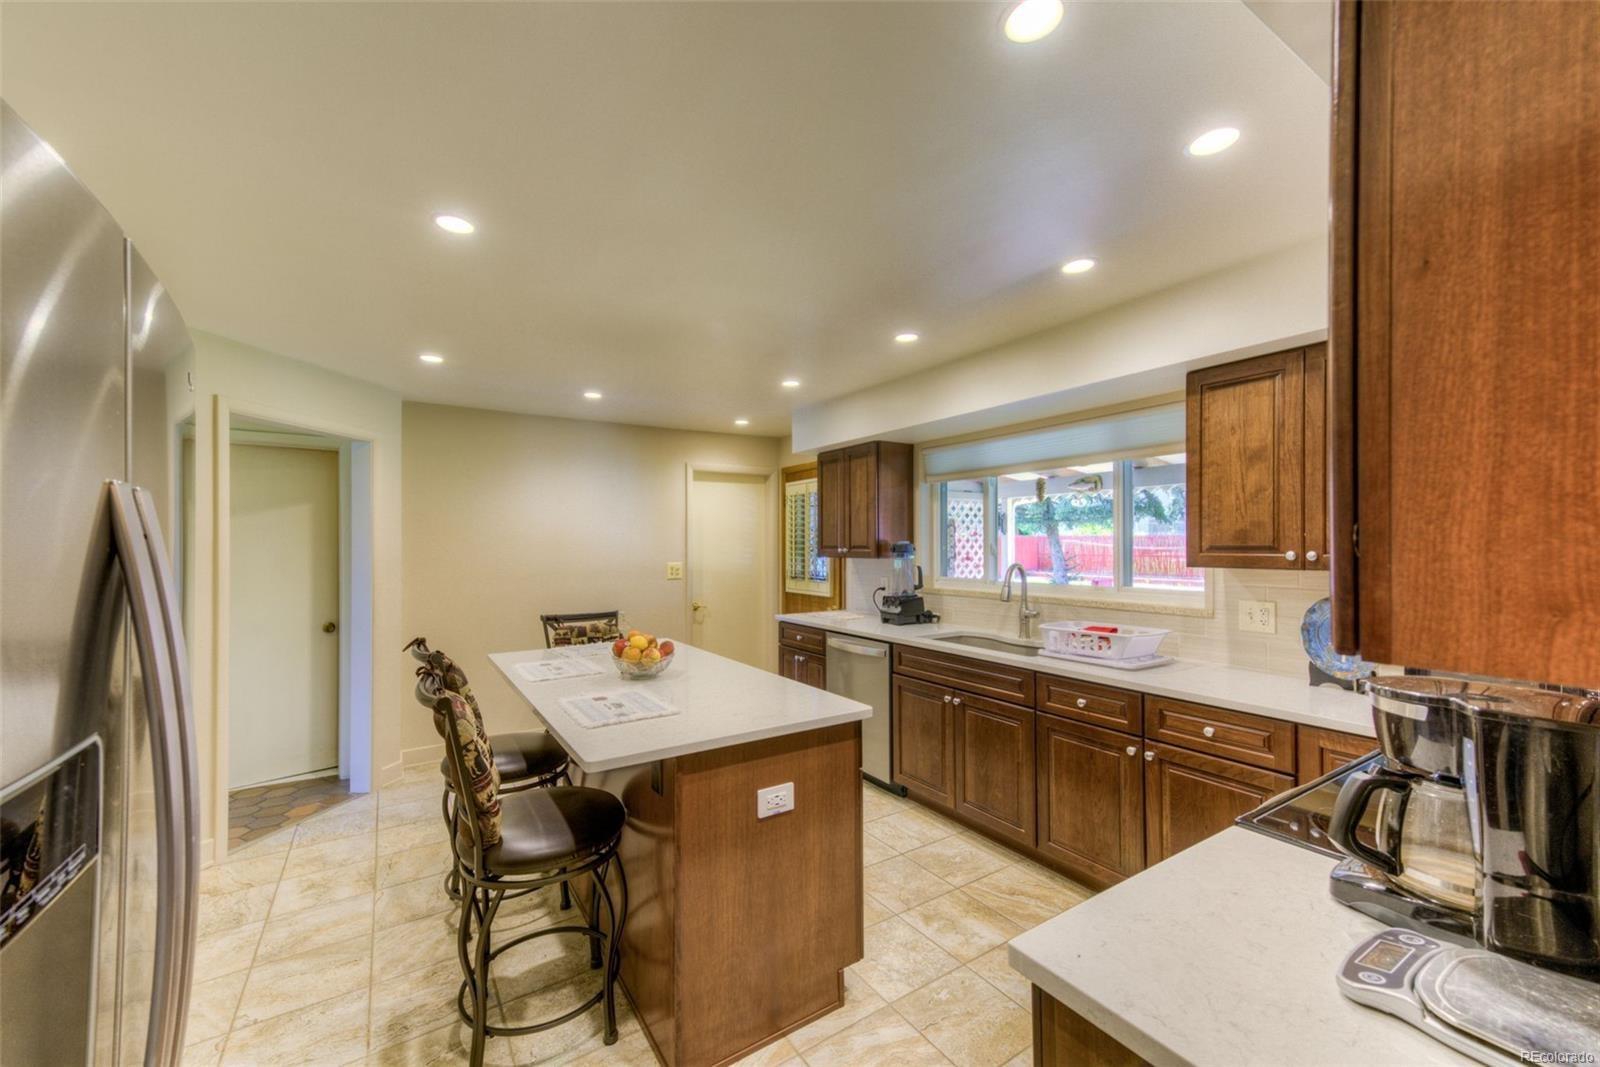 MLS# 5735873 - 7 - 45 S Brentwood Street, Lakewood, CO 80226